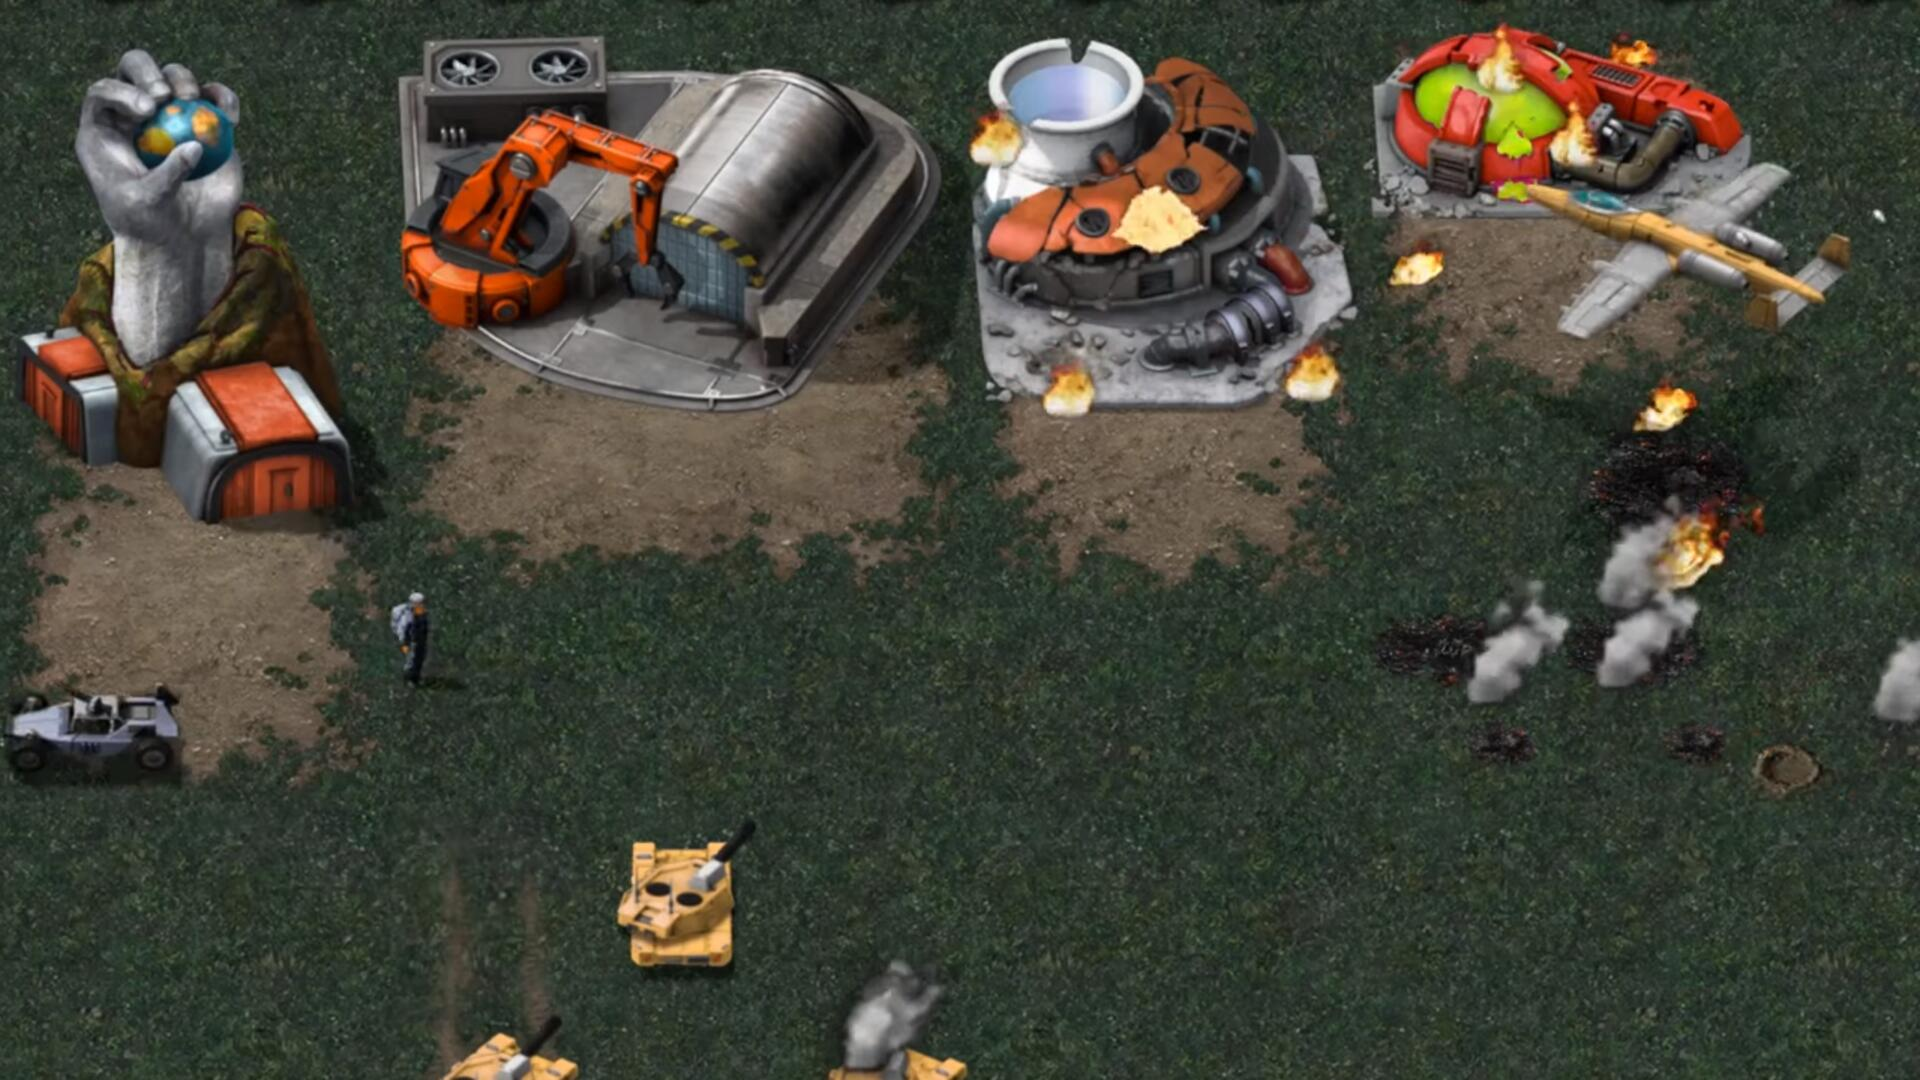 Command & Conquer Remasters Will Let You Rapidly Swap Resolutions At The Push of a Button